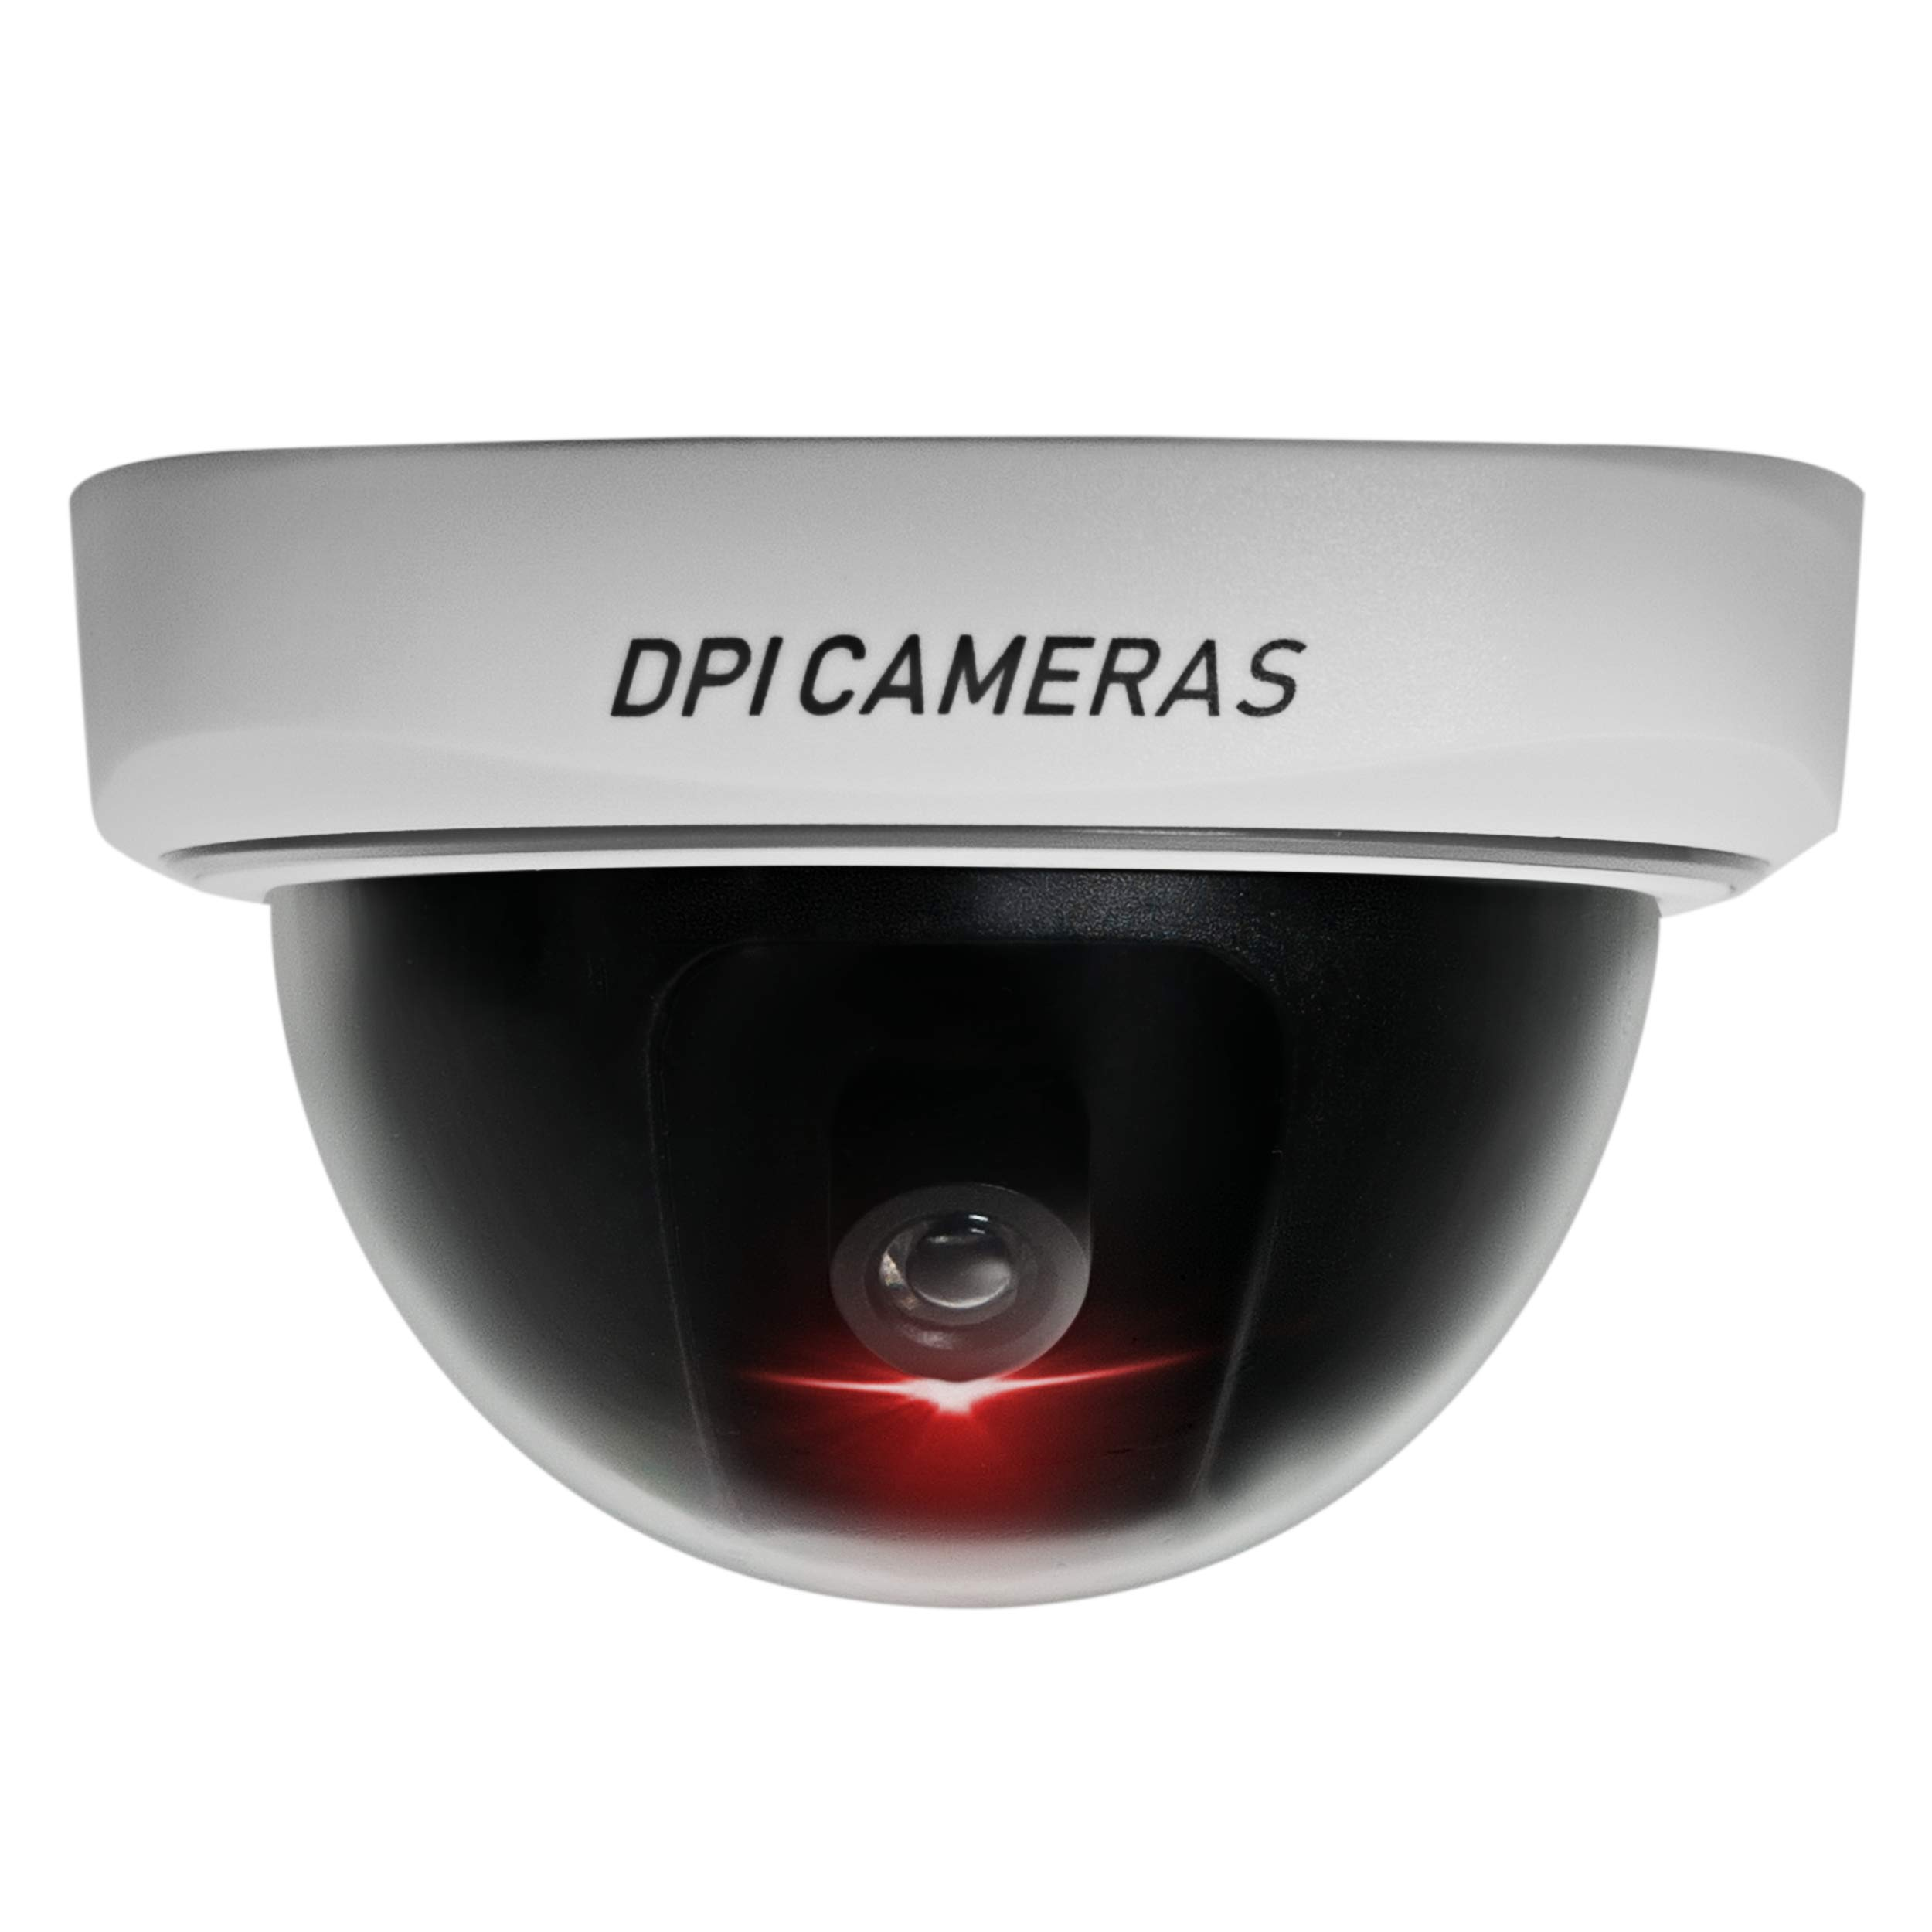 DPI Fake Security Camera 4 Pack with Authentic Look Fake Cameras for Security Fake Security Cameras Fake Surveillance Dummy Cameras for Security Fake Video Recording Red LED Light Dome Camera by DPI